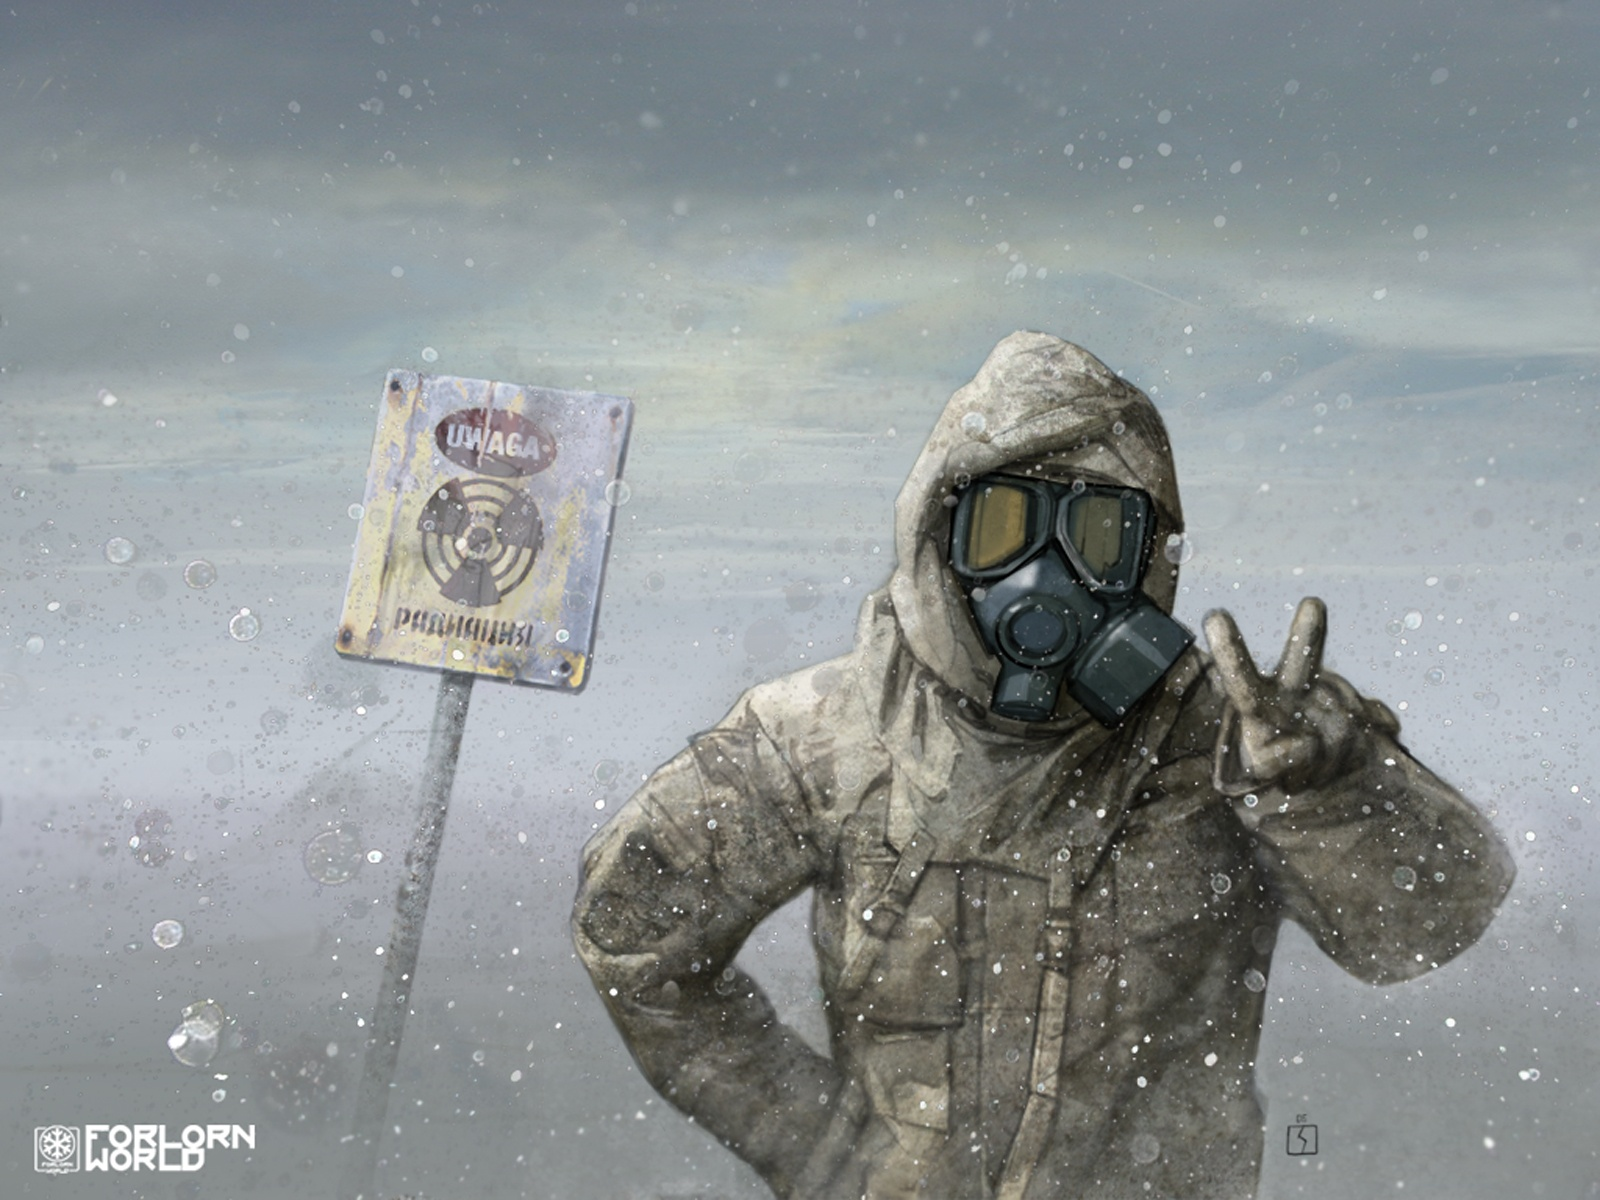 Drawn_wallpapers_Nuclear_Winter_016548_.jpg